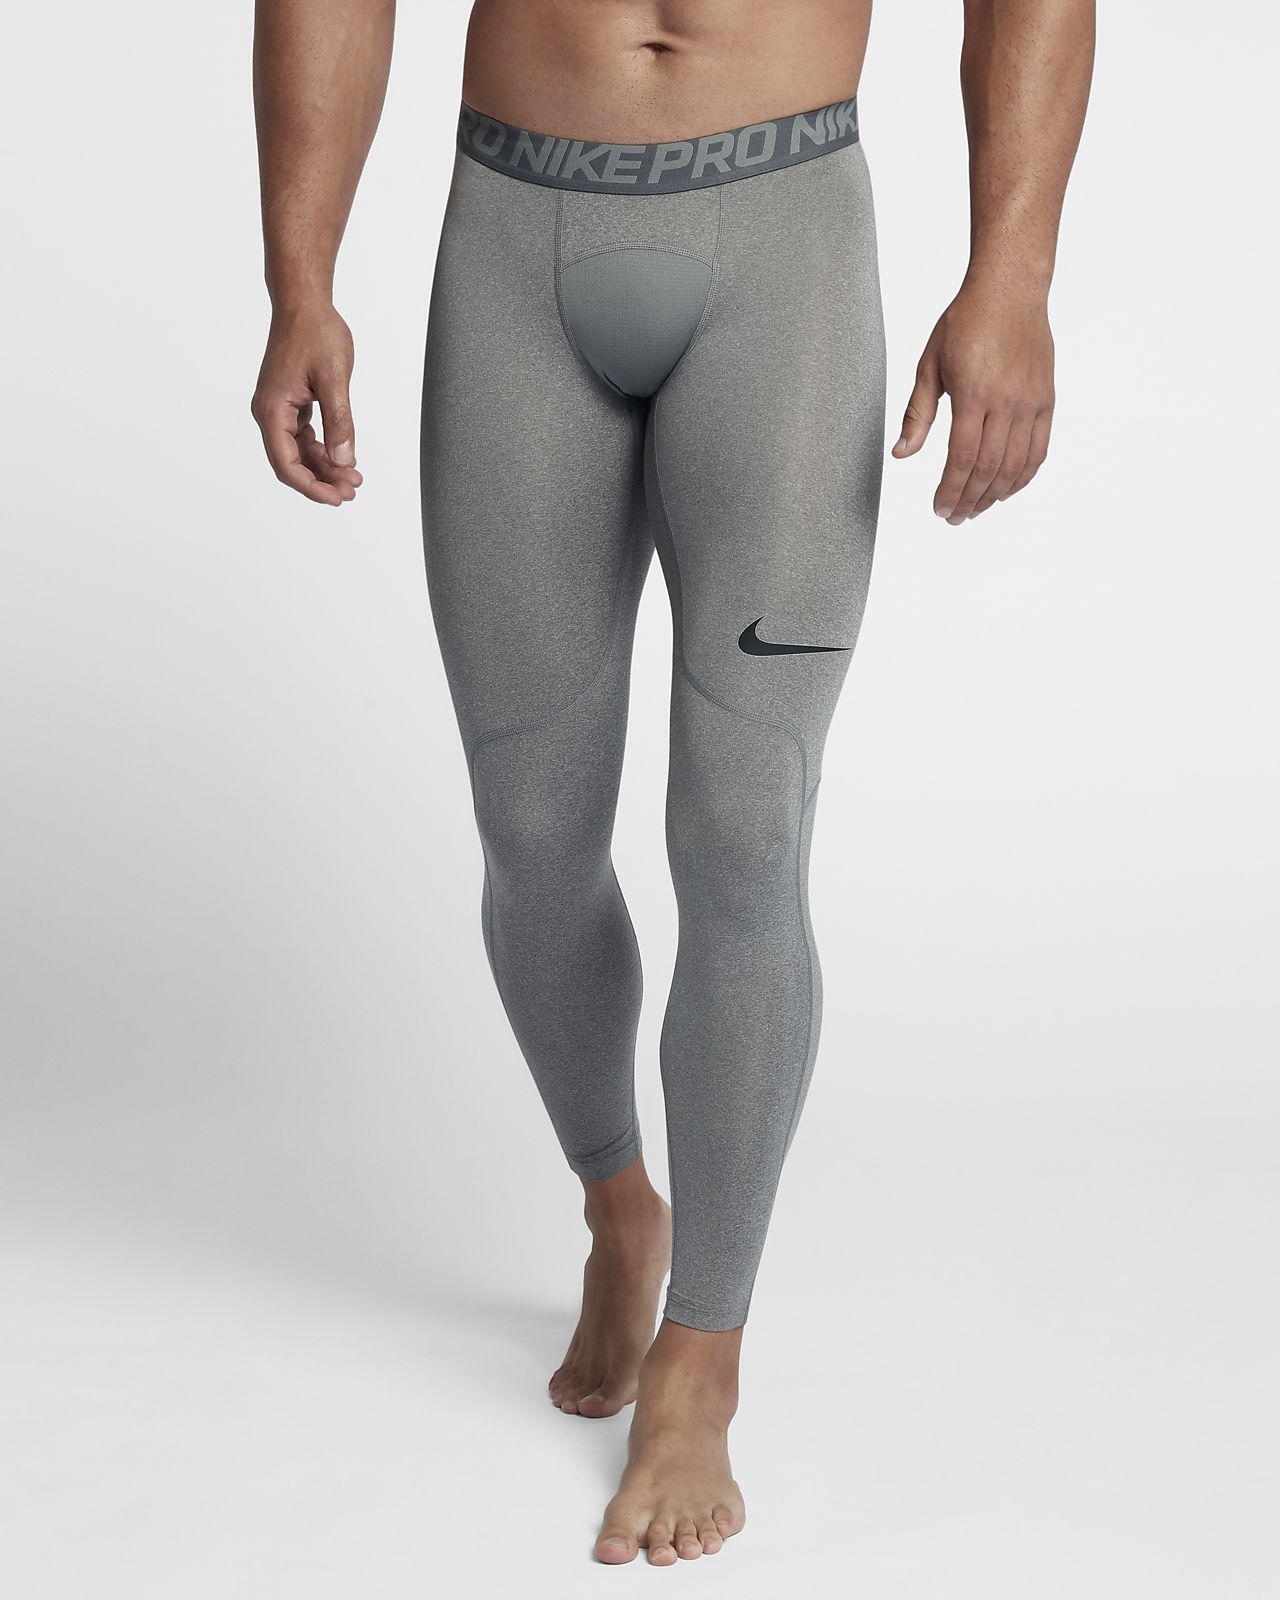 51bffc703334 Low Resolution Nike Pro Men s Tights Nike Pro Men s Tights